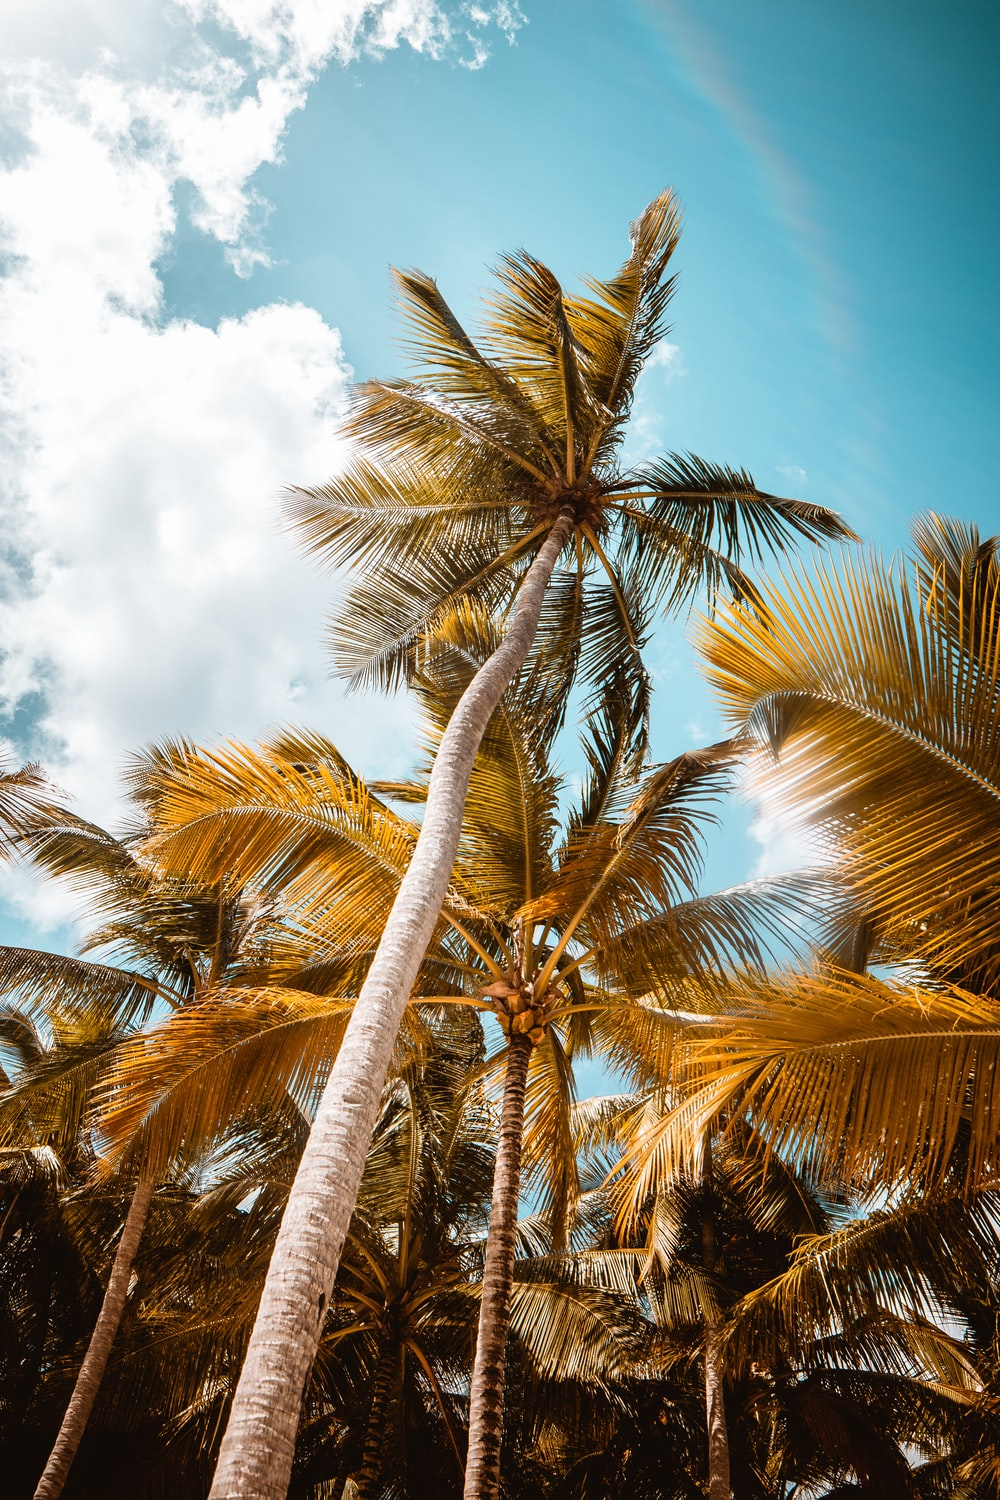 coconut tree under blue sky during daytime